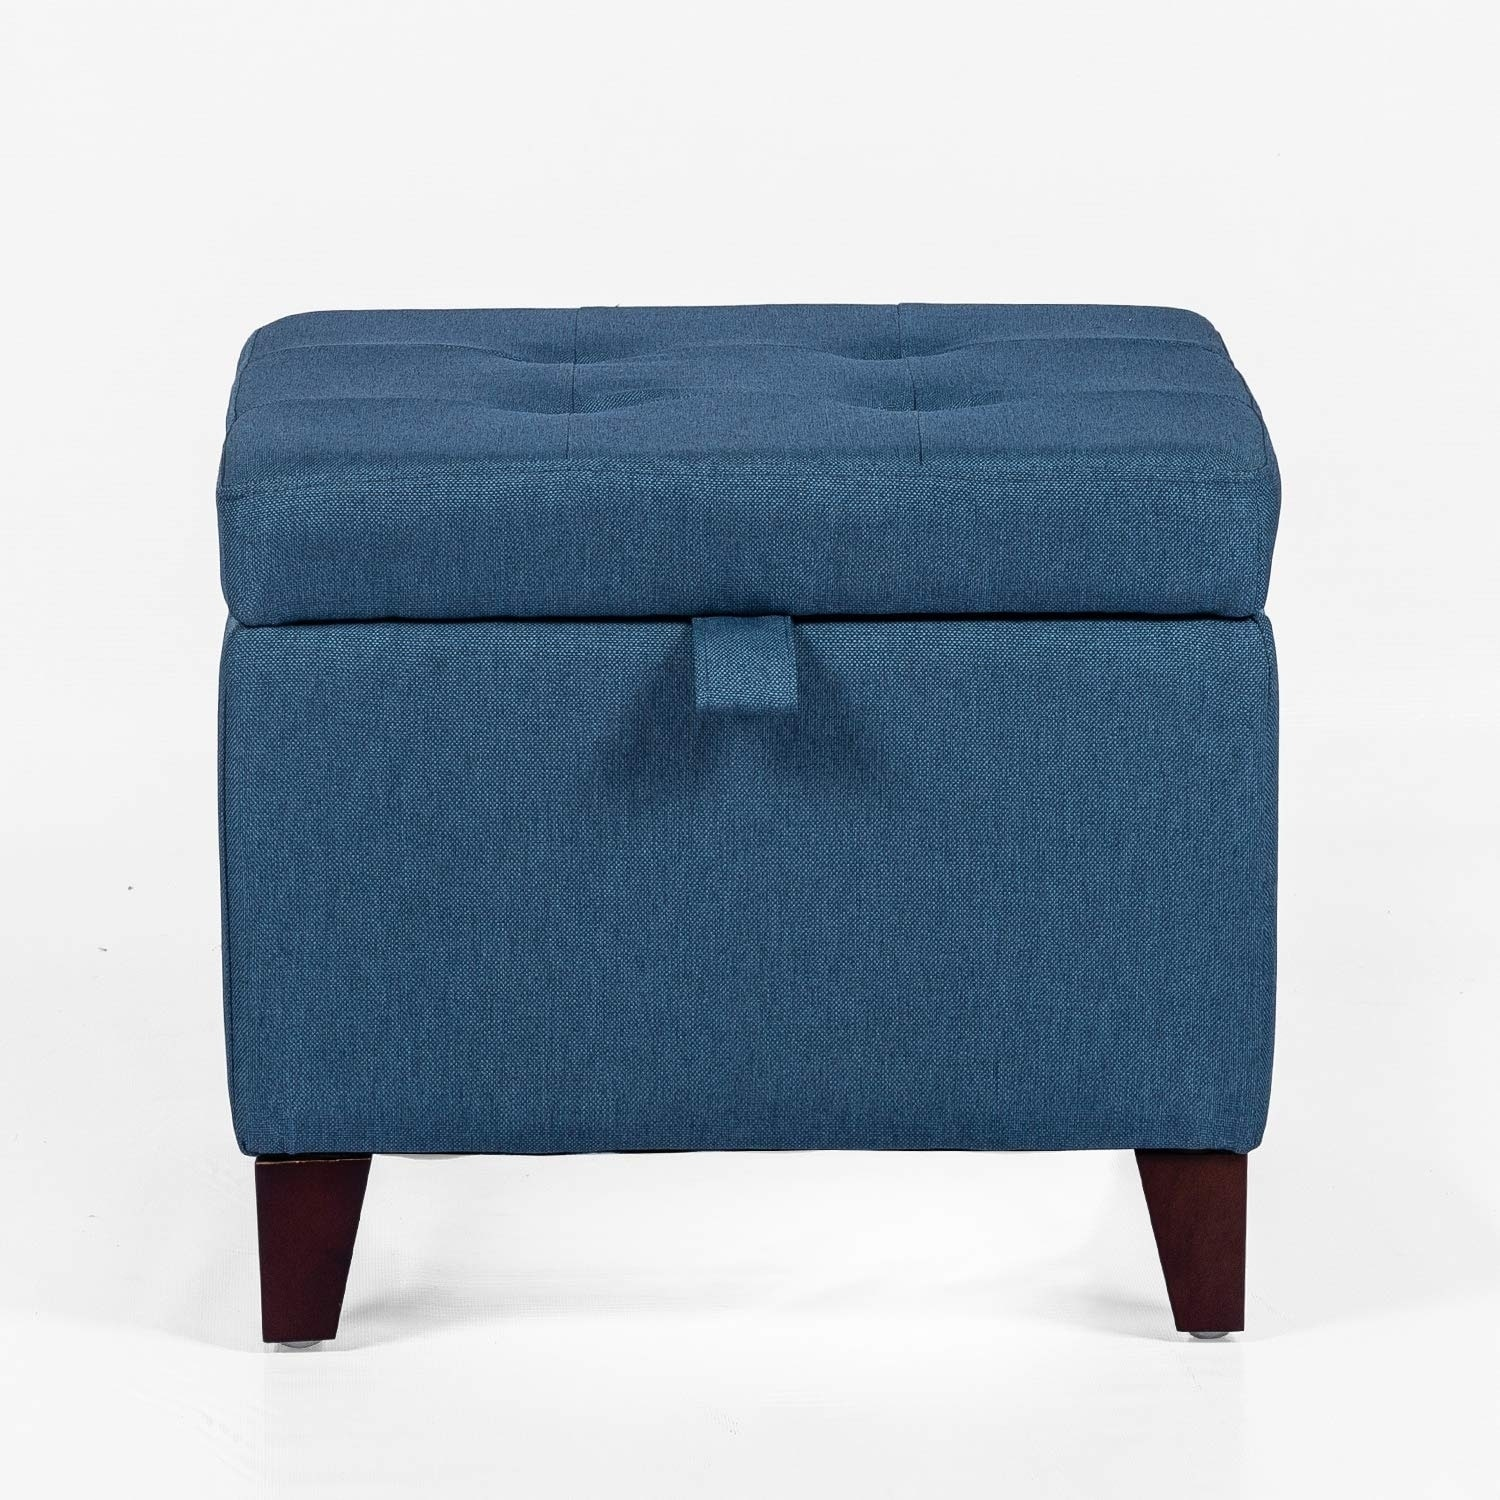 Adeco Square Fabric Storage Ottoman With Tufted Flip Top 18x18x15 Deep Blue On Sale Overstock 29302212